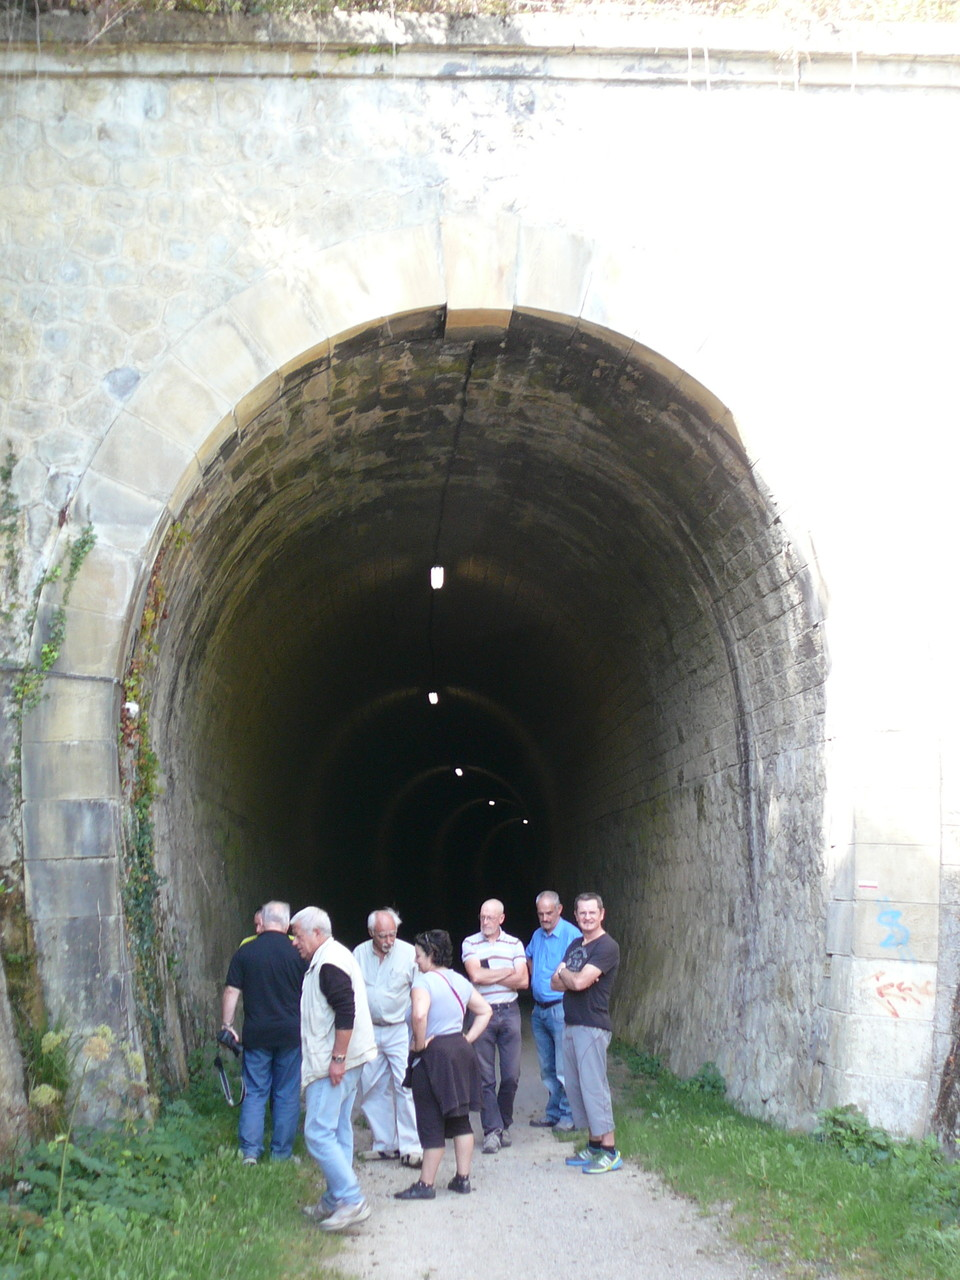 Le tunnel de Camon